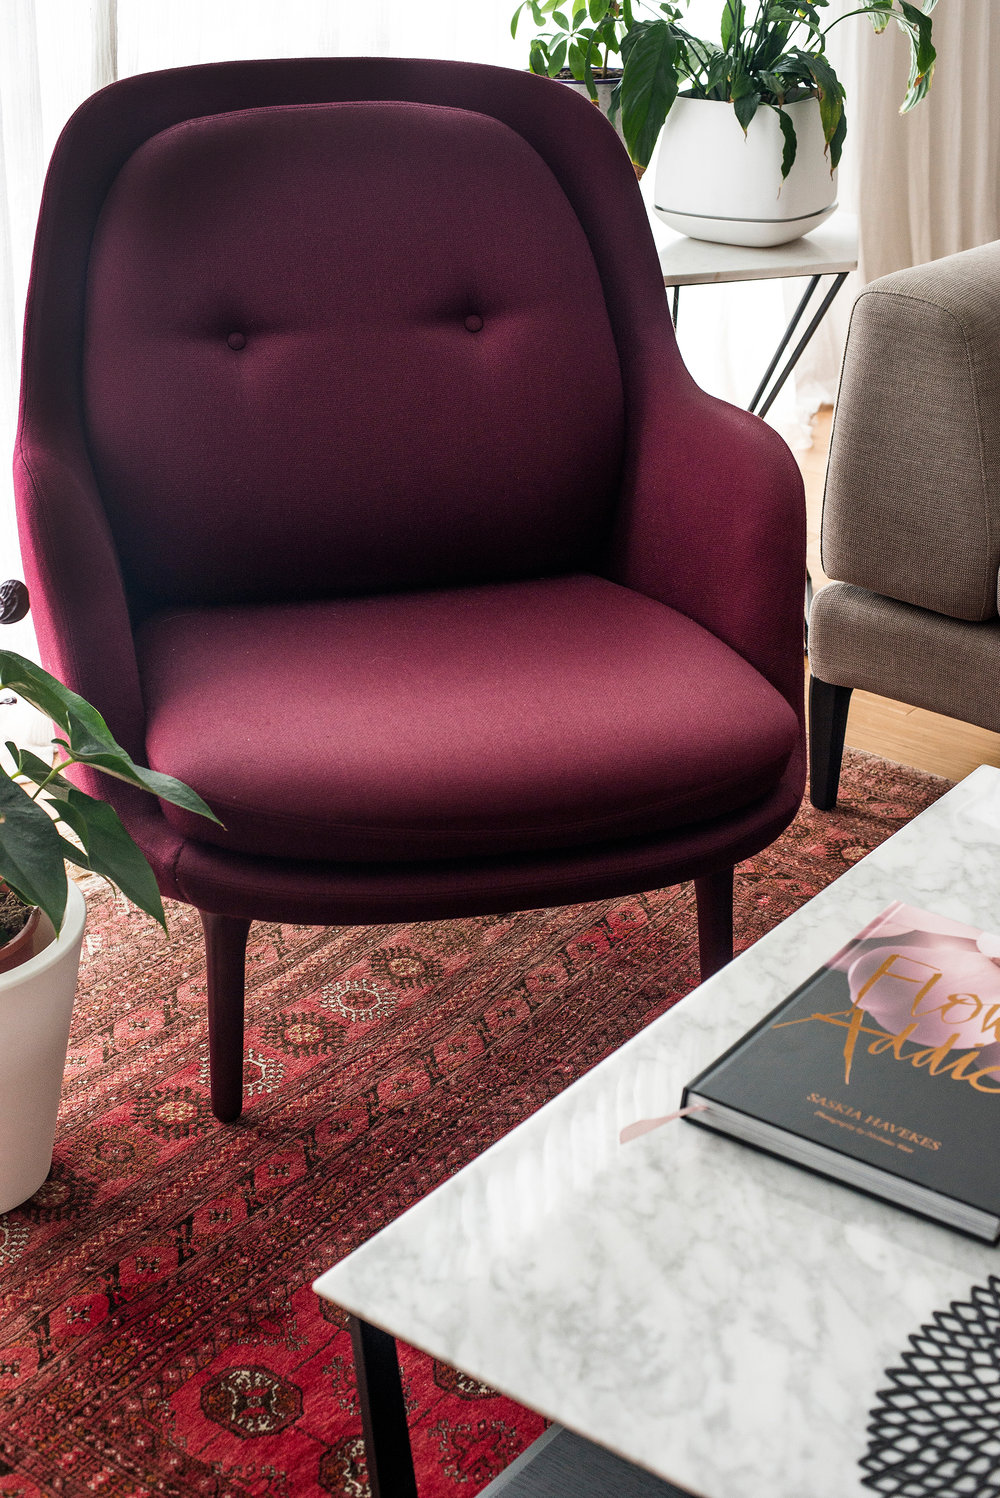 Furniture and styling photograph